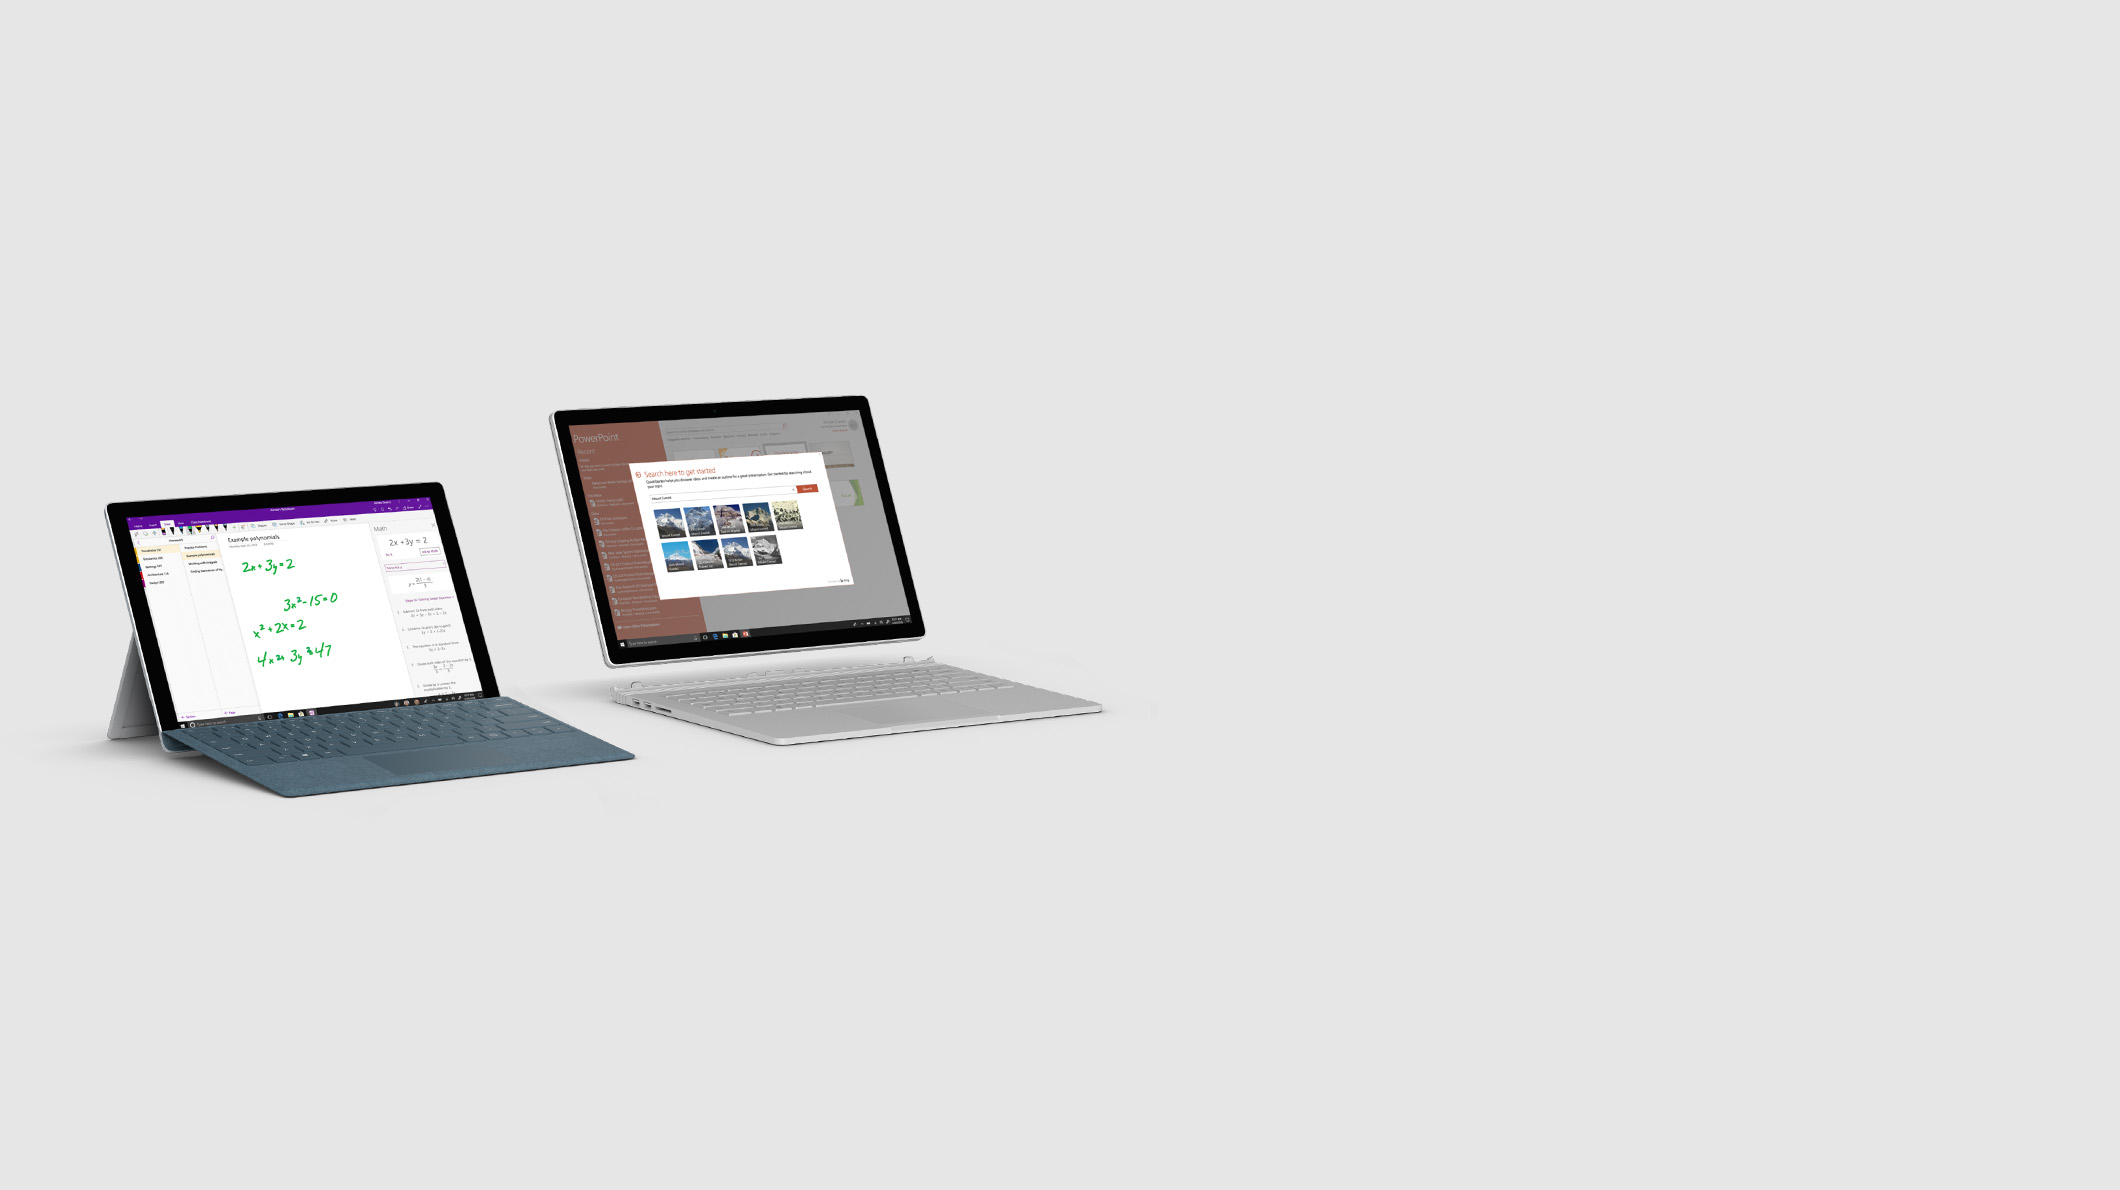 Surface Pro and Surface Book 2